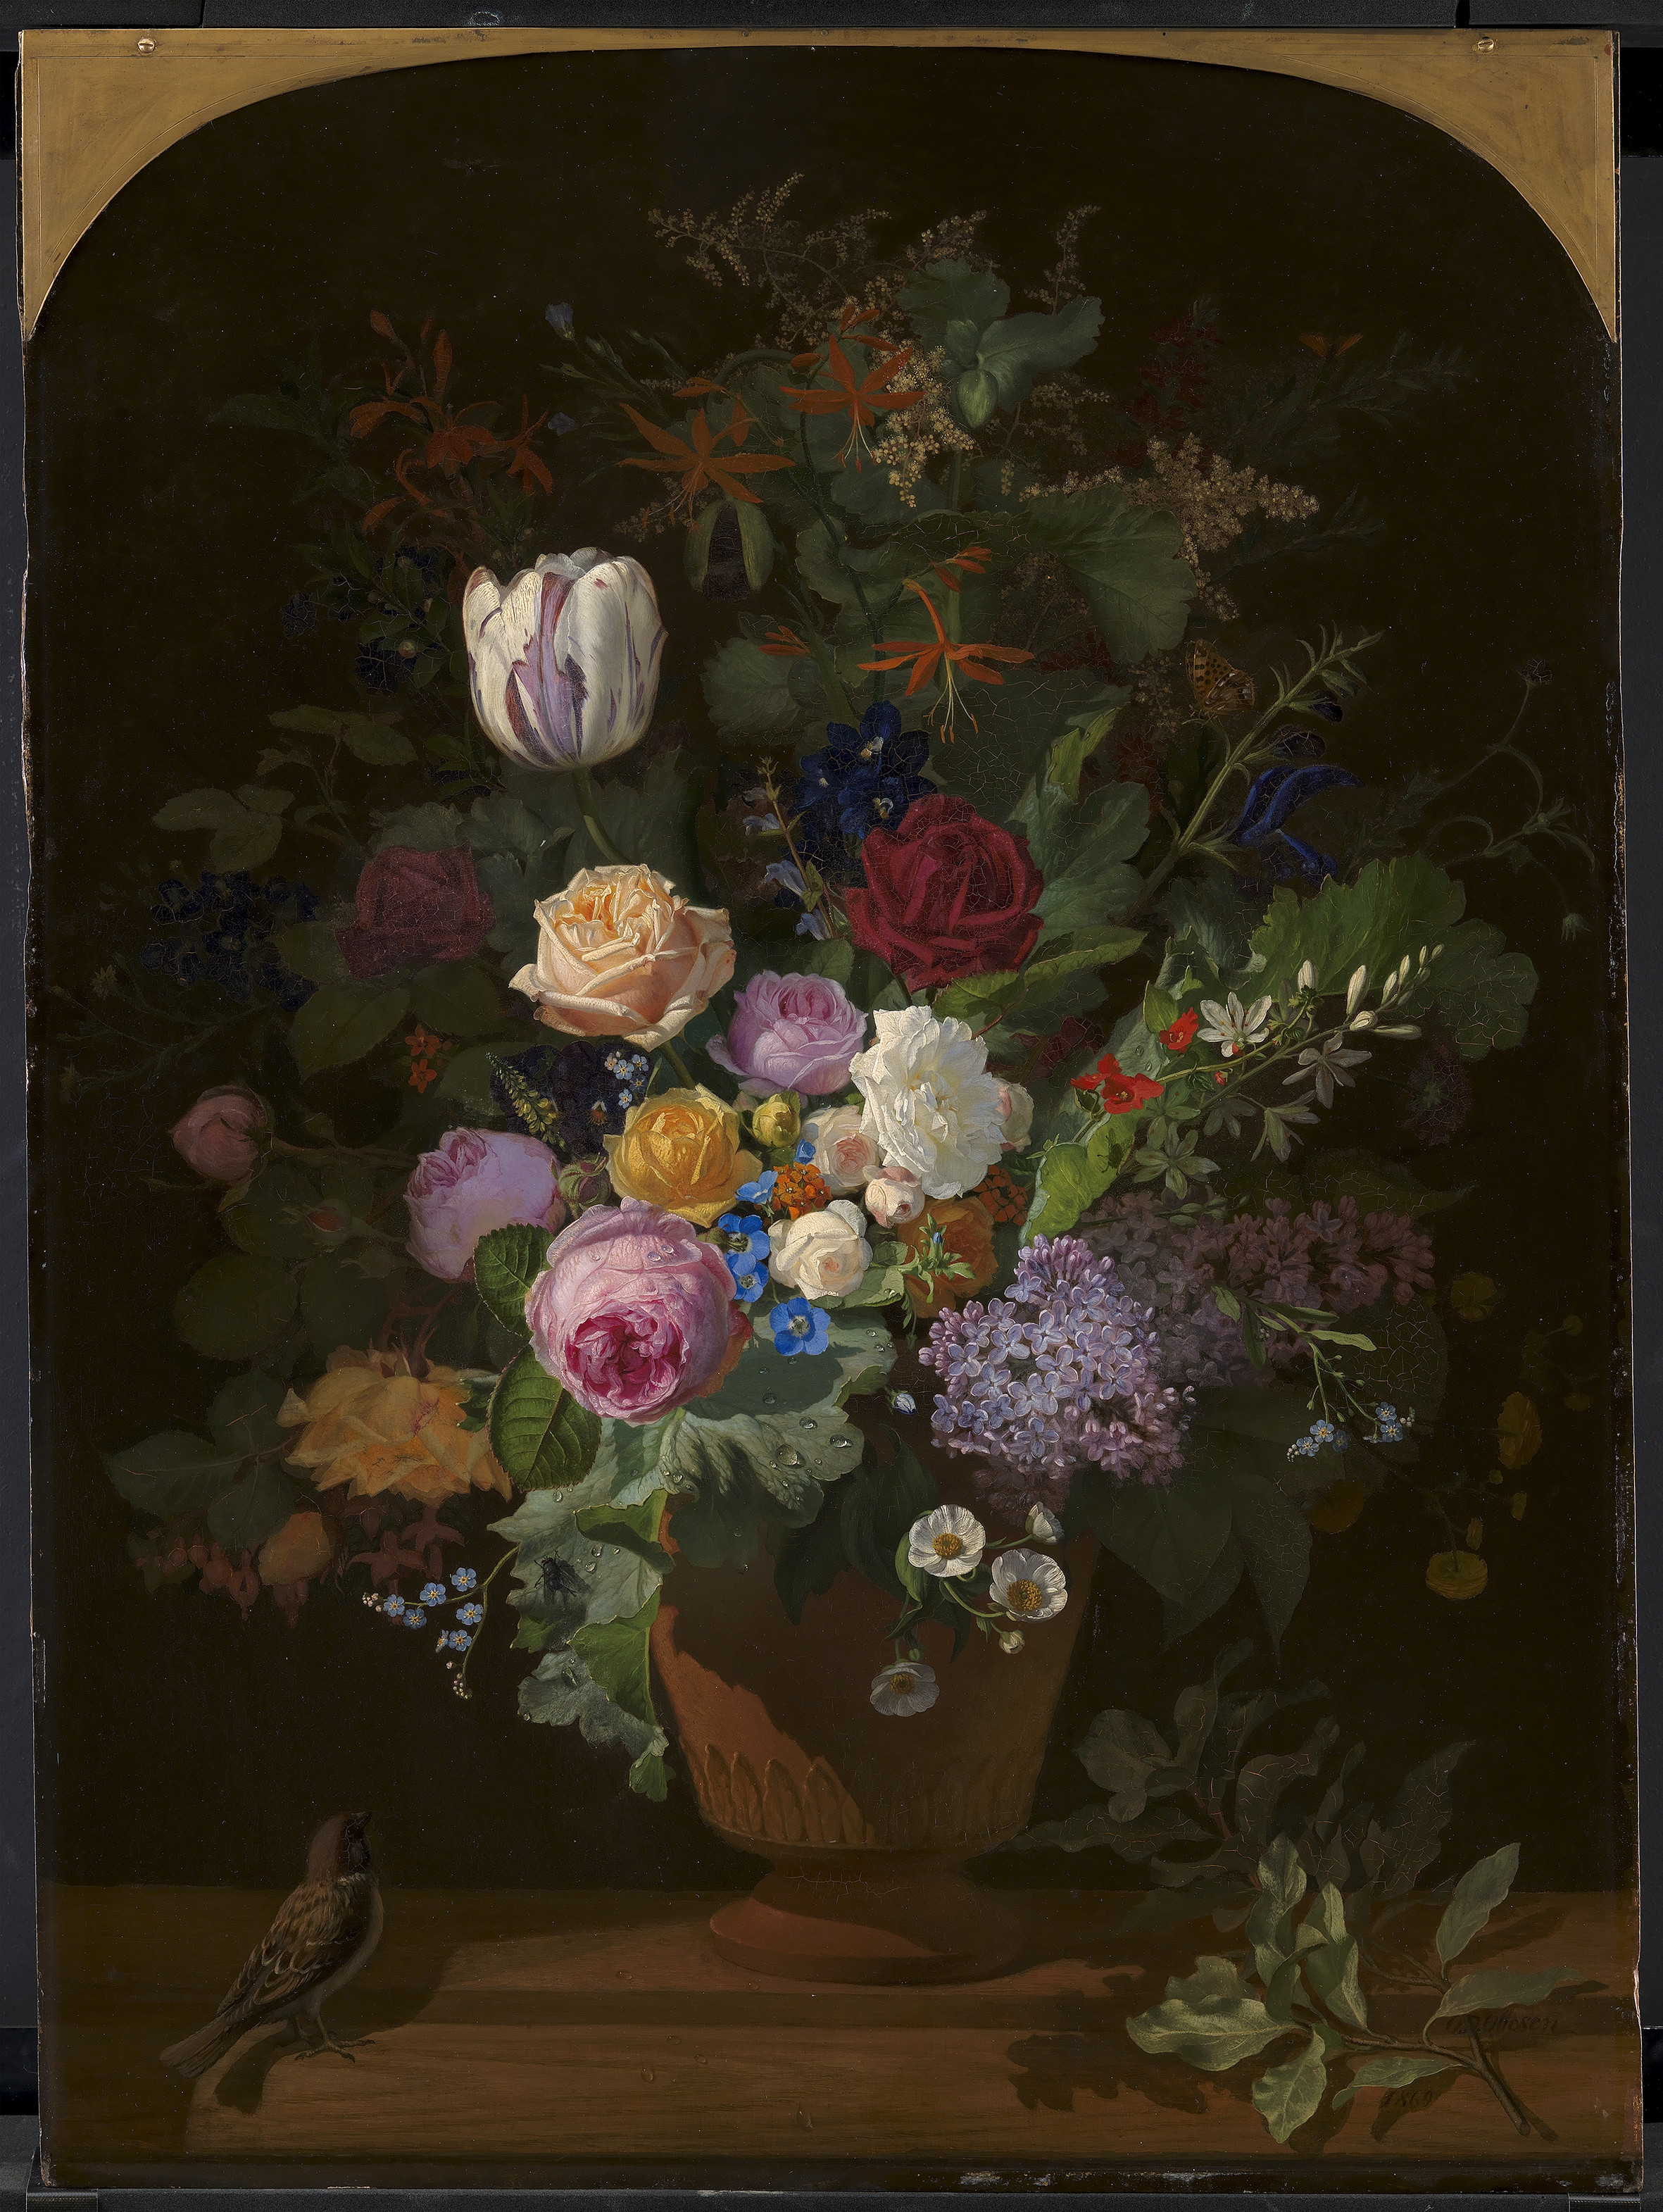 vw bud vase of 25 luxury flower vase painting watercolor flower decoration ideas throughout flower vase painting watercolor awesome file o d ottesen flowers in a vase kms865 statens museum for